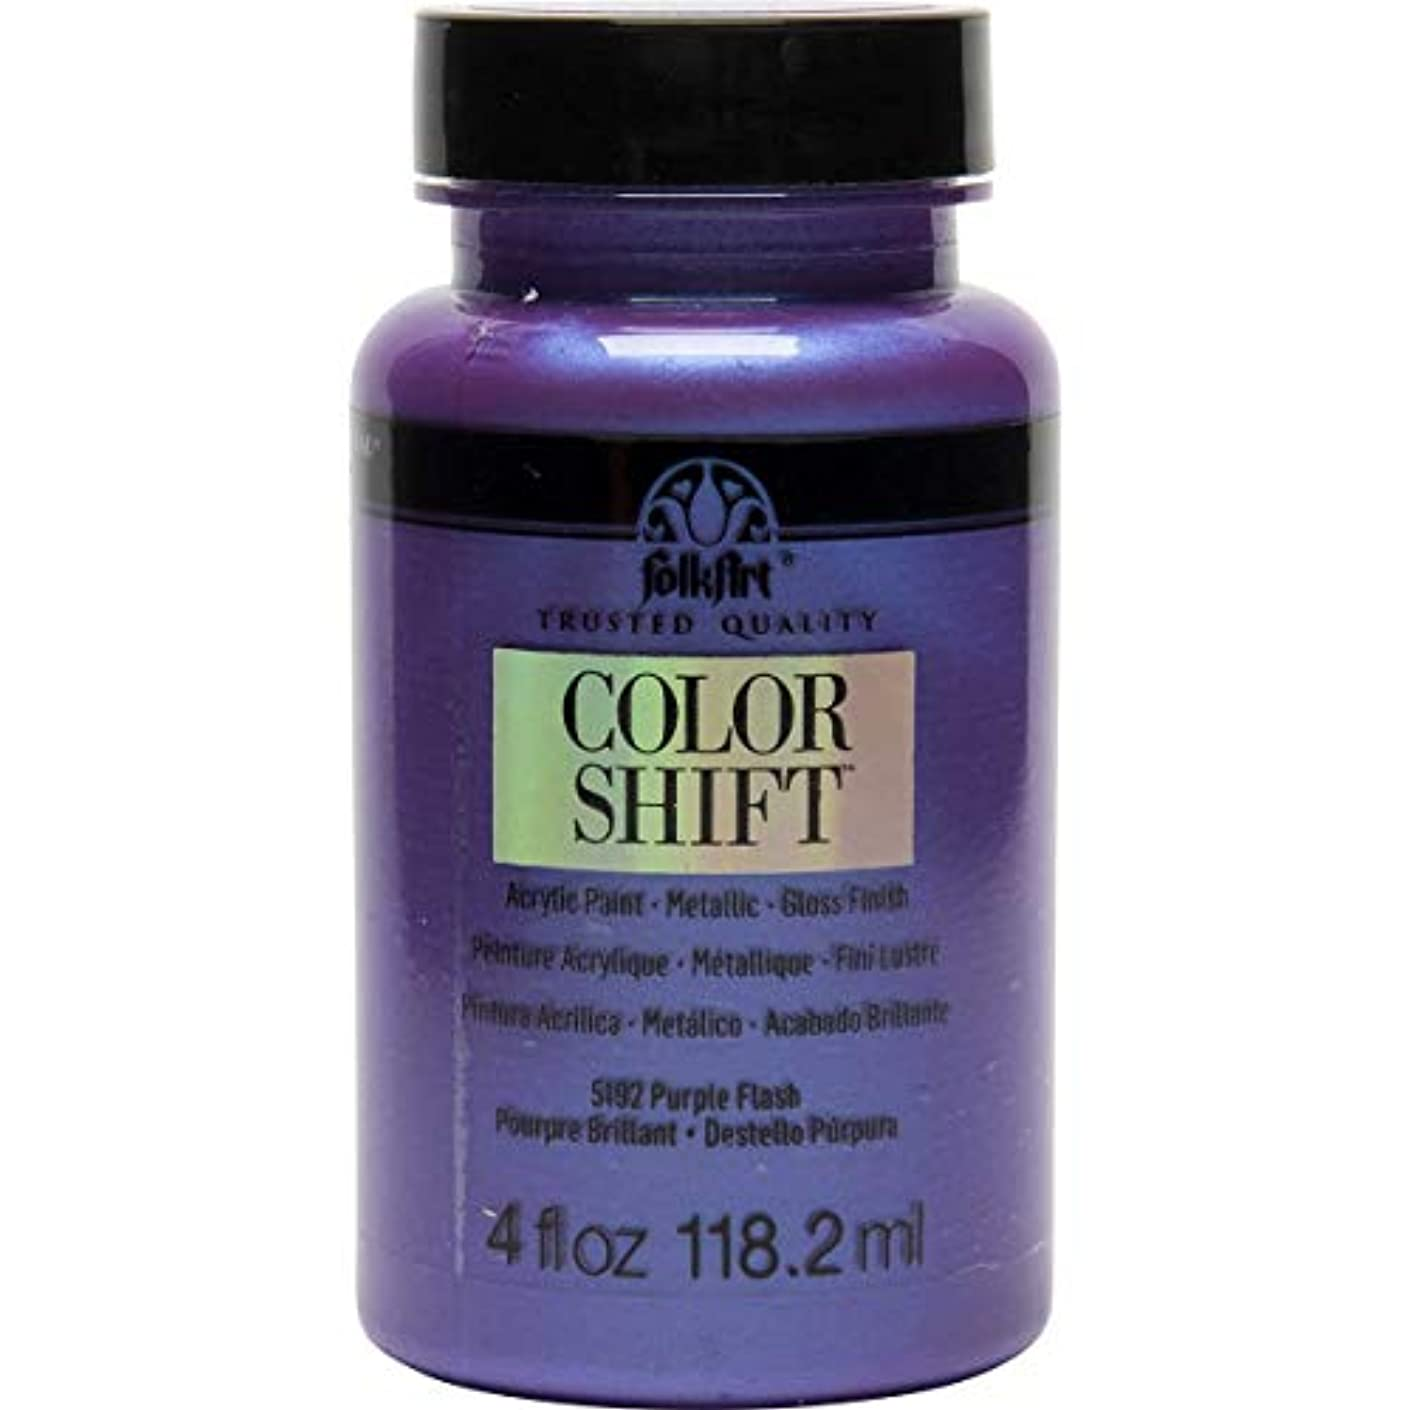 FolkArt Color Shift Acrylic Paint in Assorted Colors (4 oz), 5192 Purple Flash